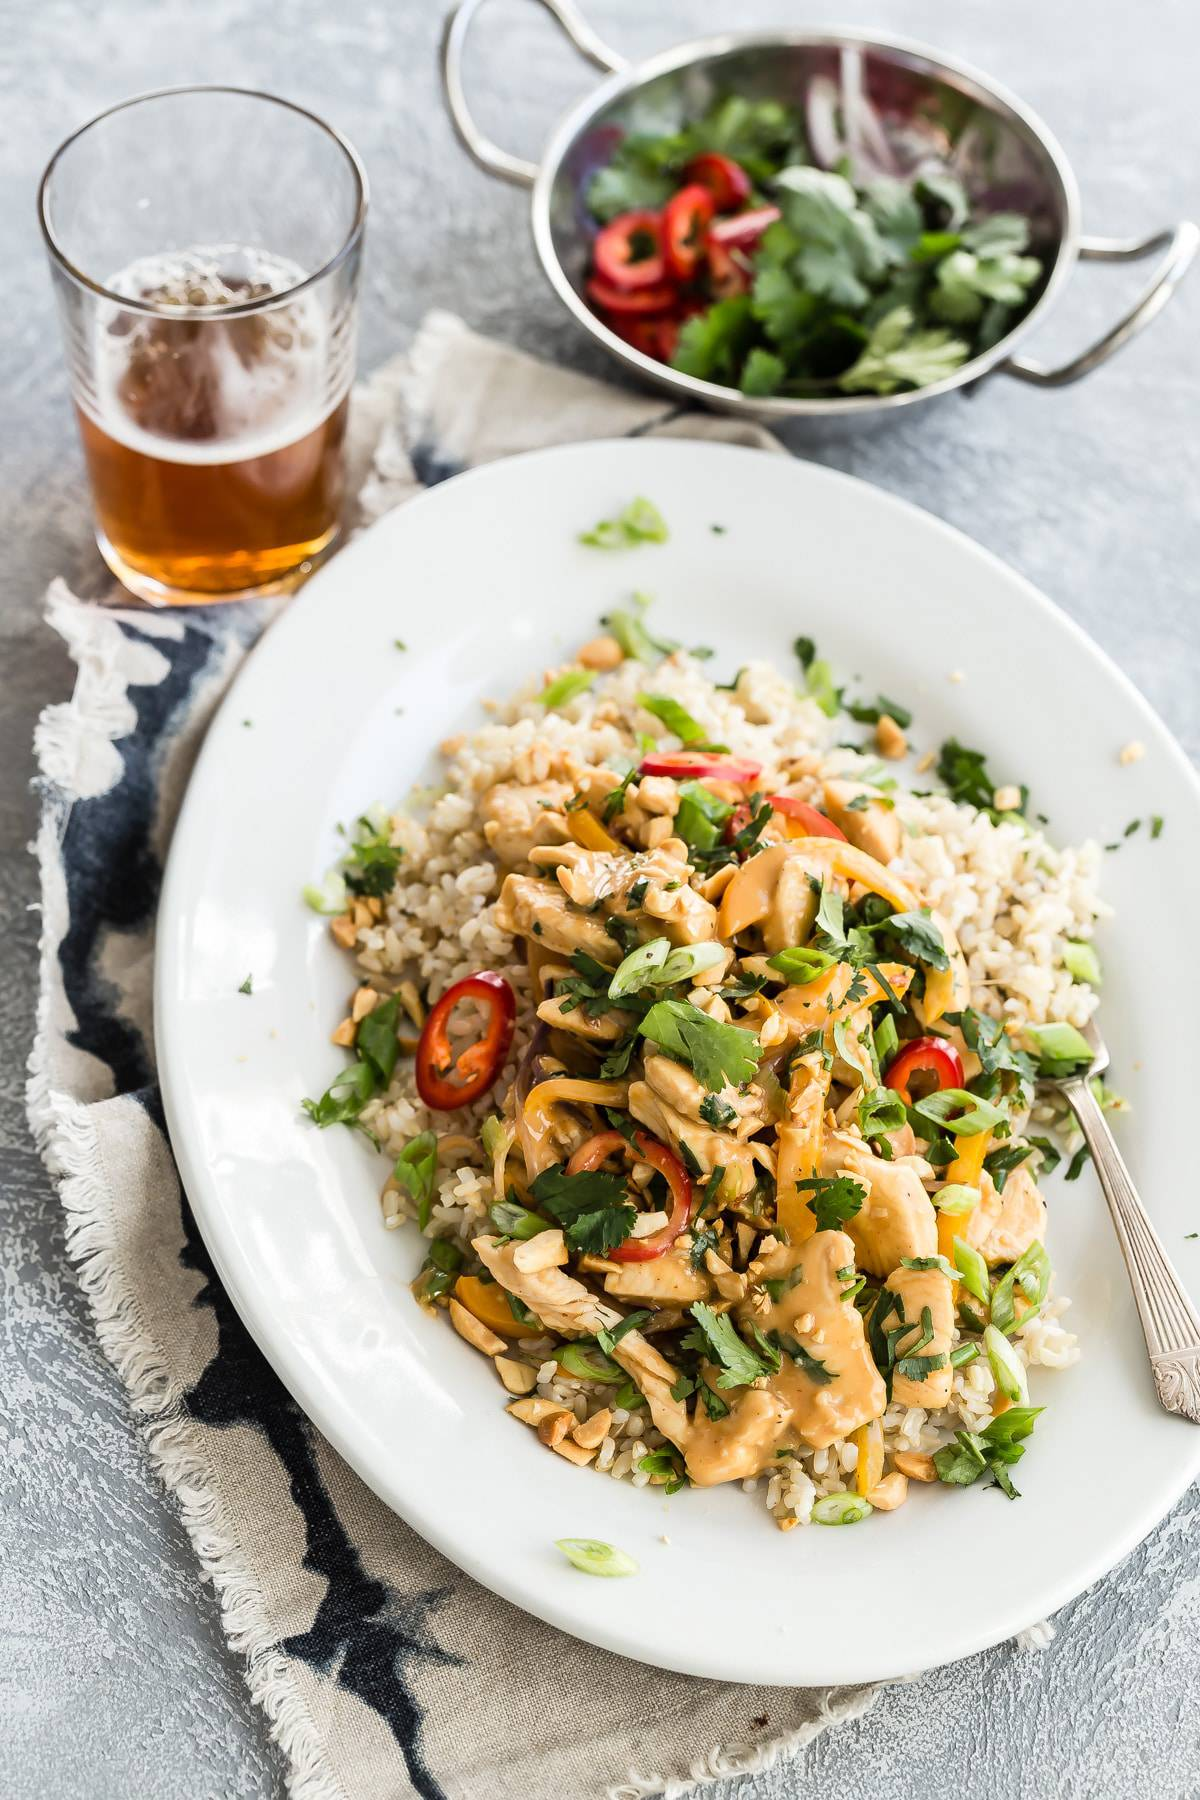 Tasty chicken stir fry